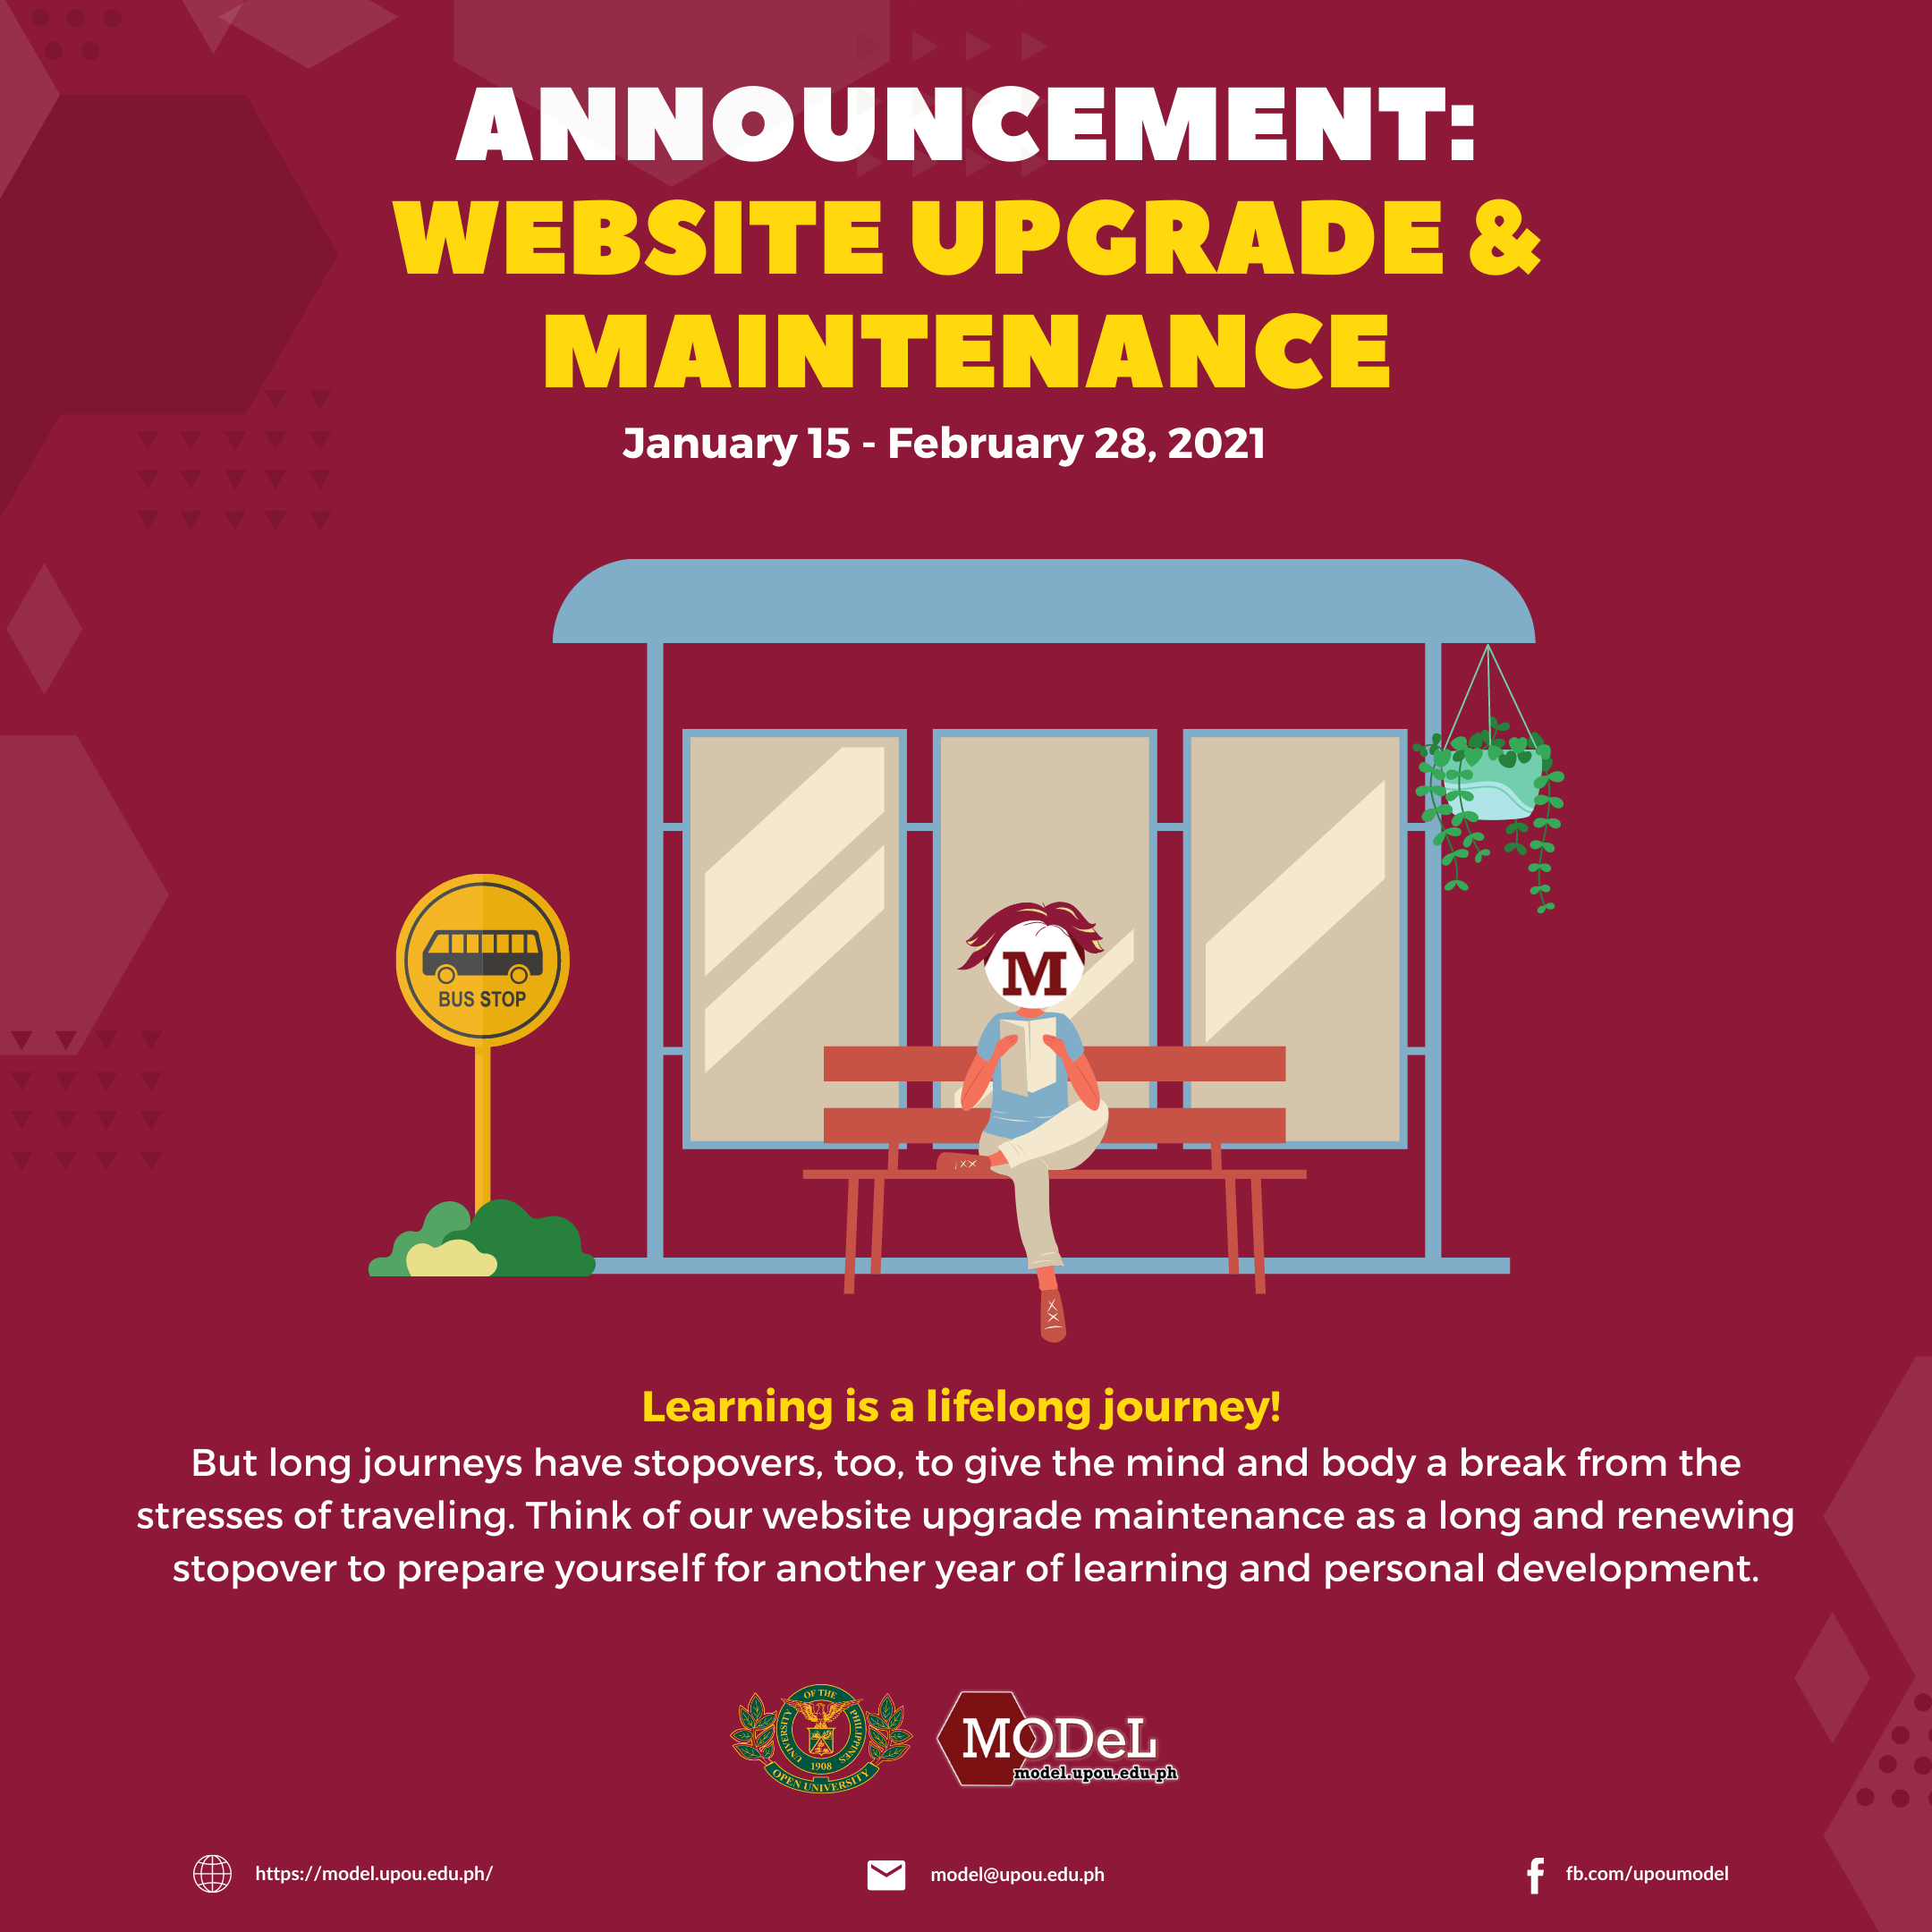 two-month website downtime starting this Friday, January 15 until February 28, 2021